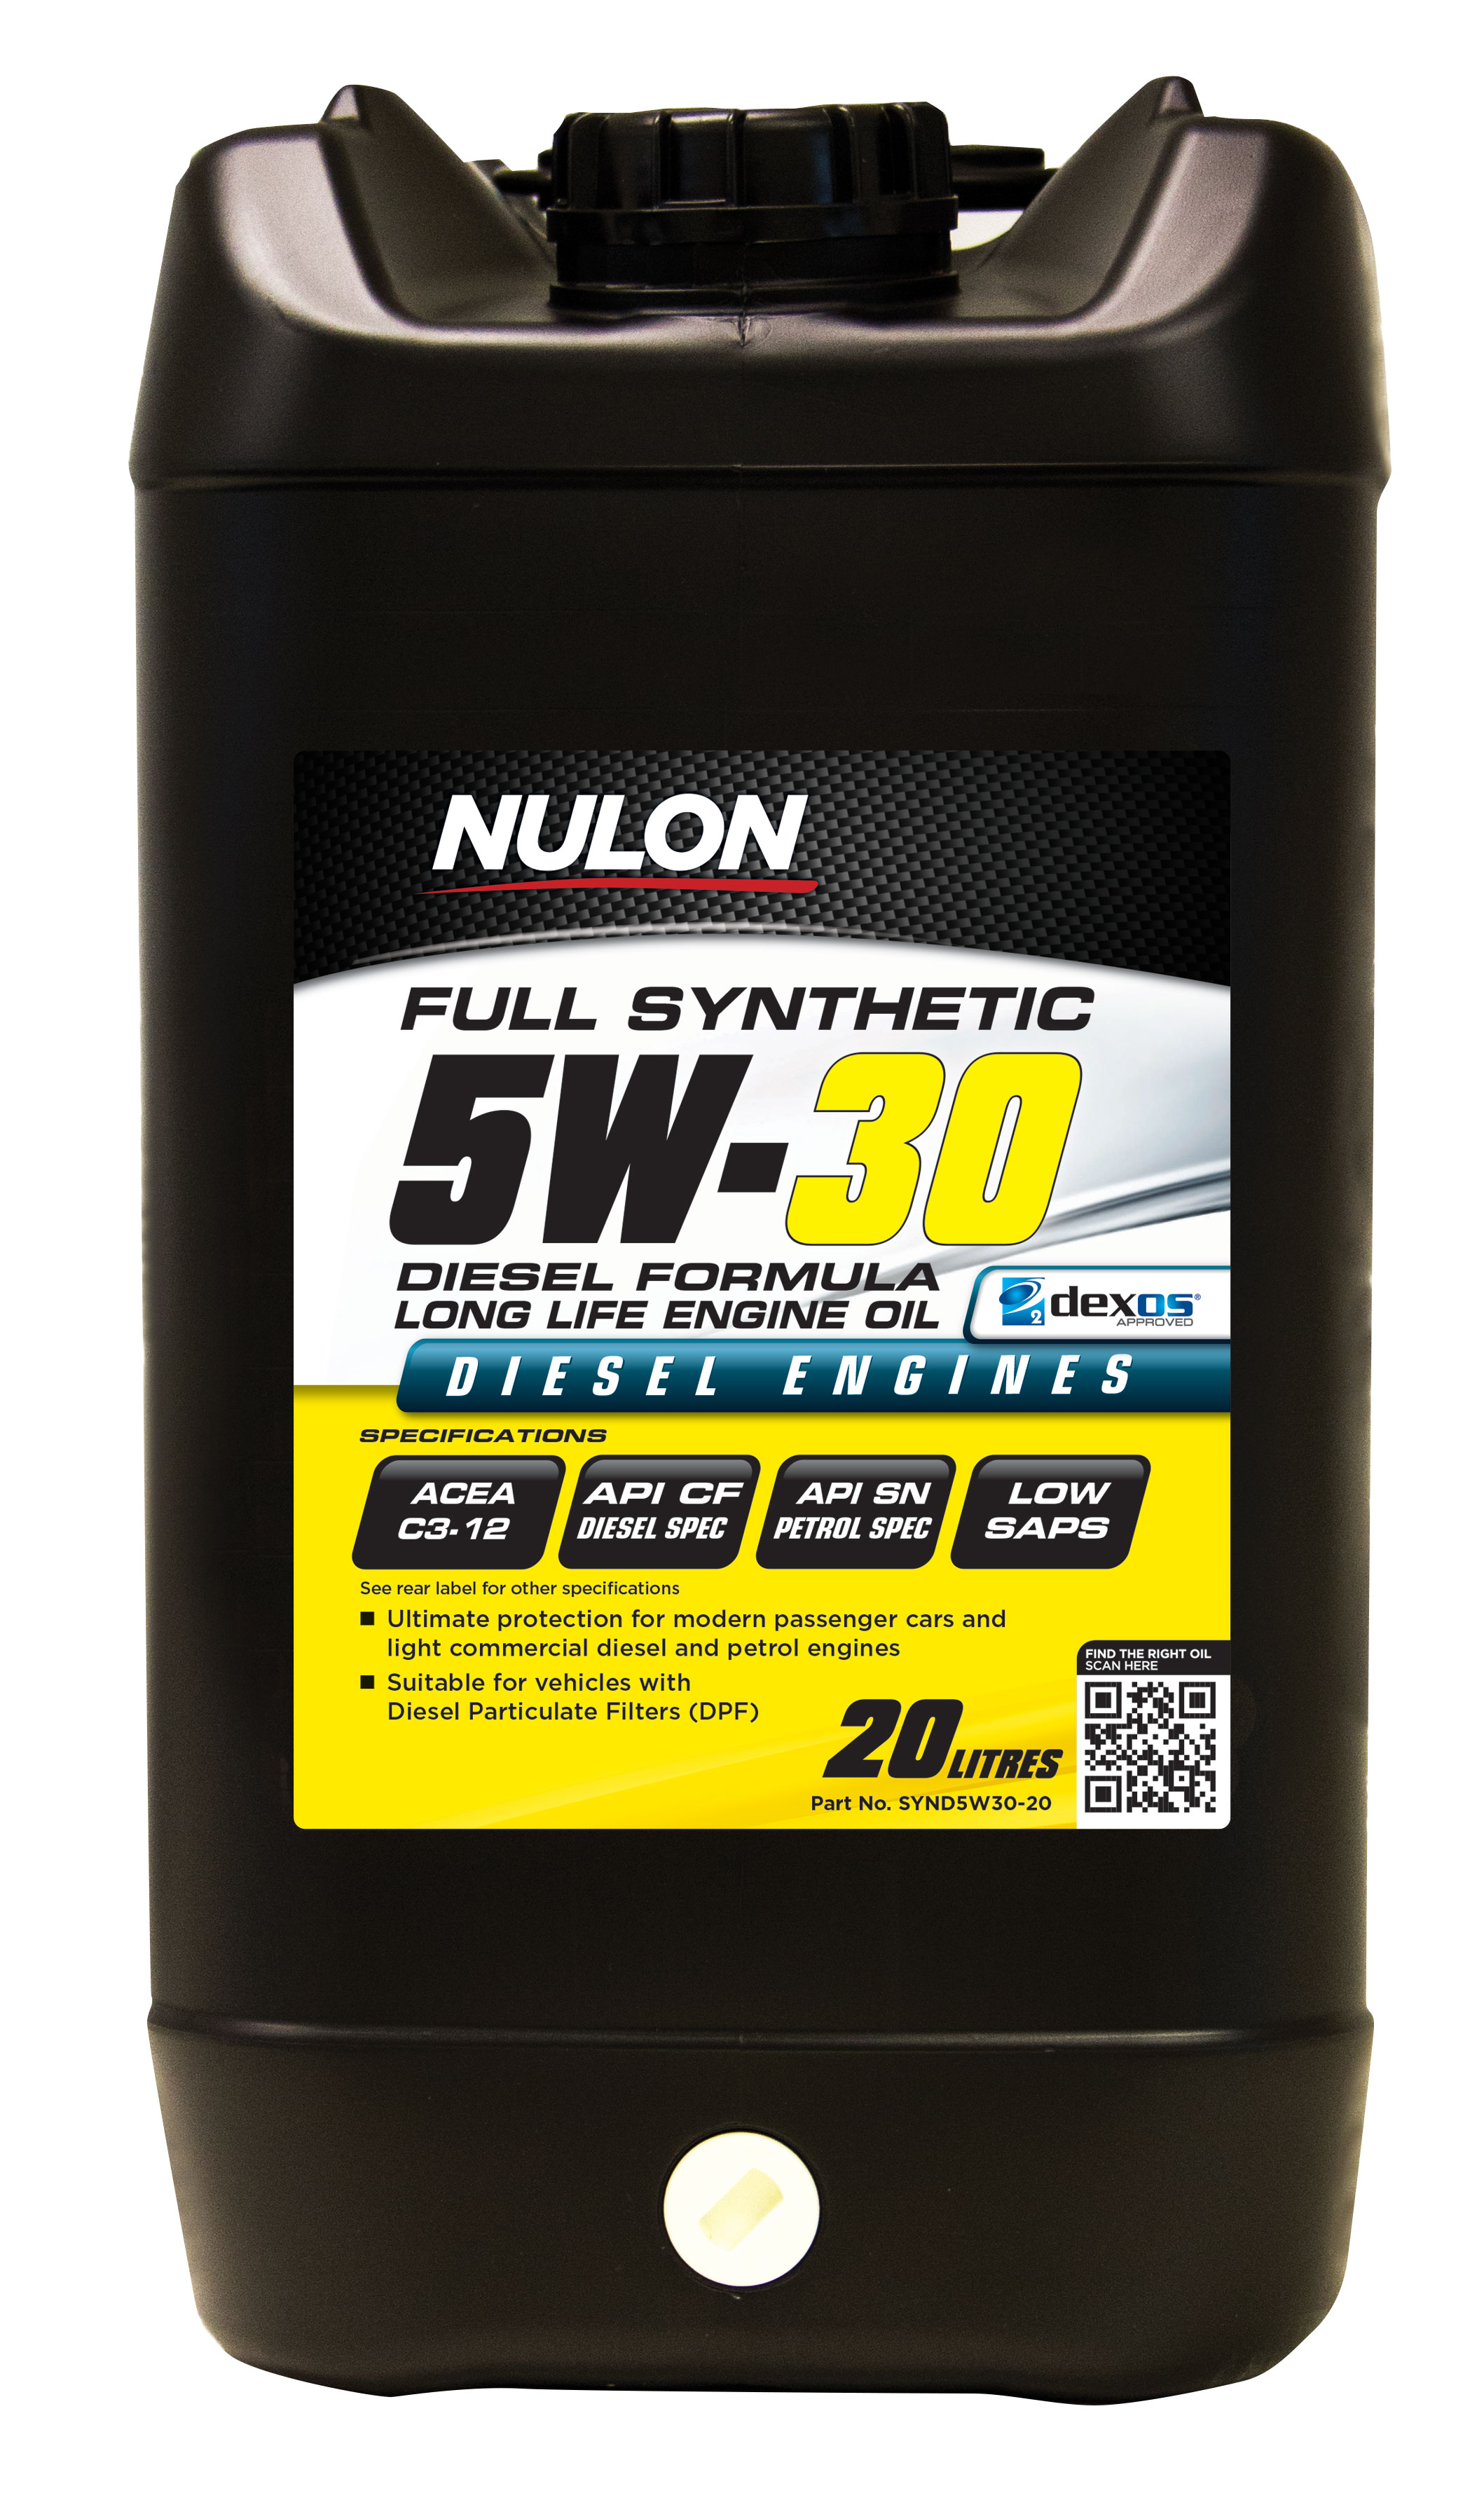 Nulon full synthetic 5w30 diesel formula long life engine for Synthetic vs non synthetic motor oil